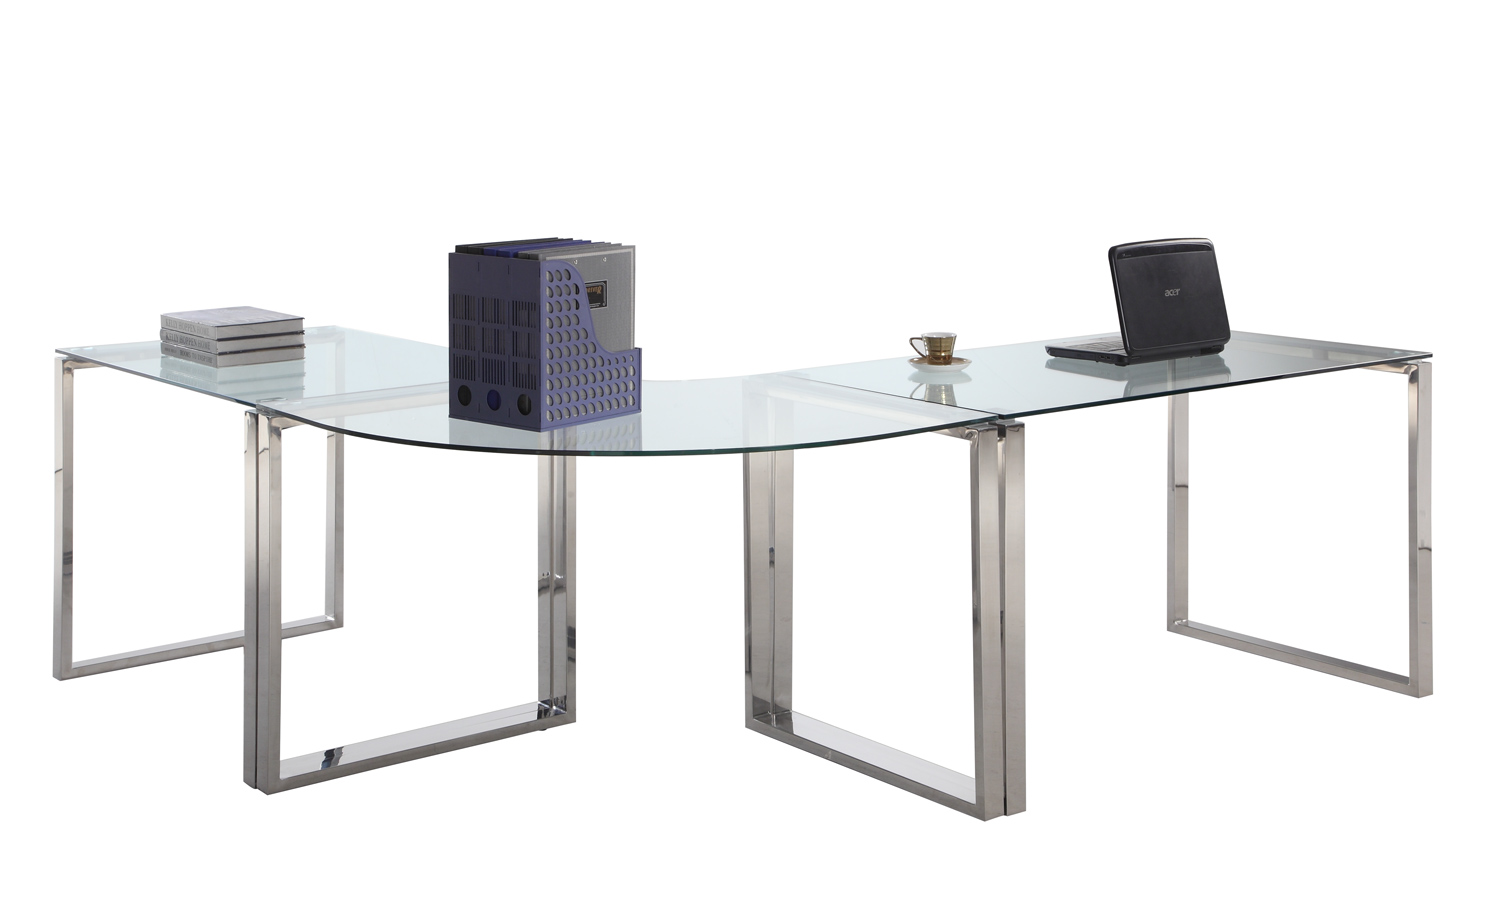 chintaly imports 6931 computer desk table clear glass stainless steel ci 6931 dsk at. Black Bedroom Furniture Sets. Home Design Ideas